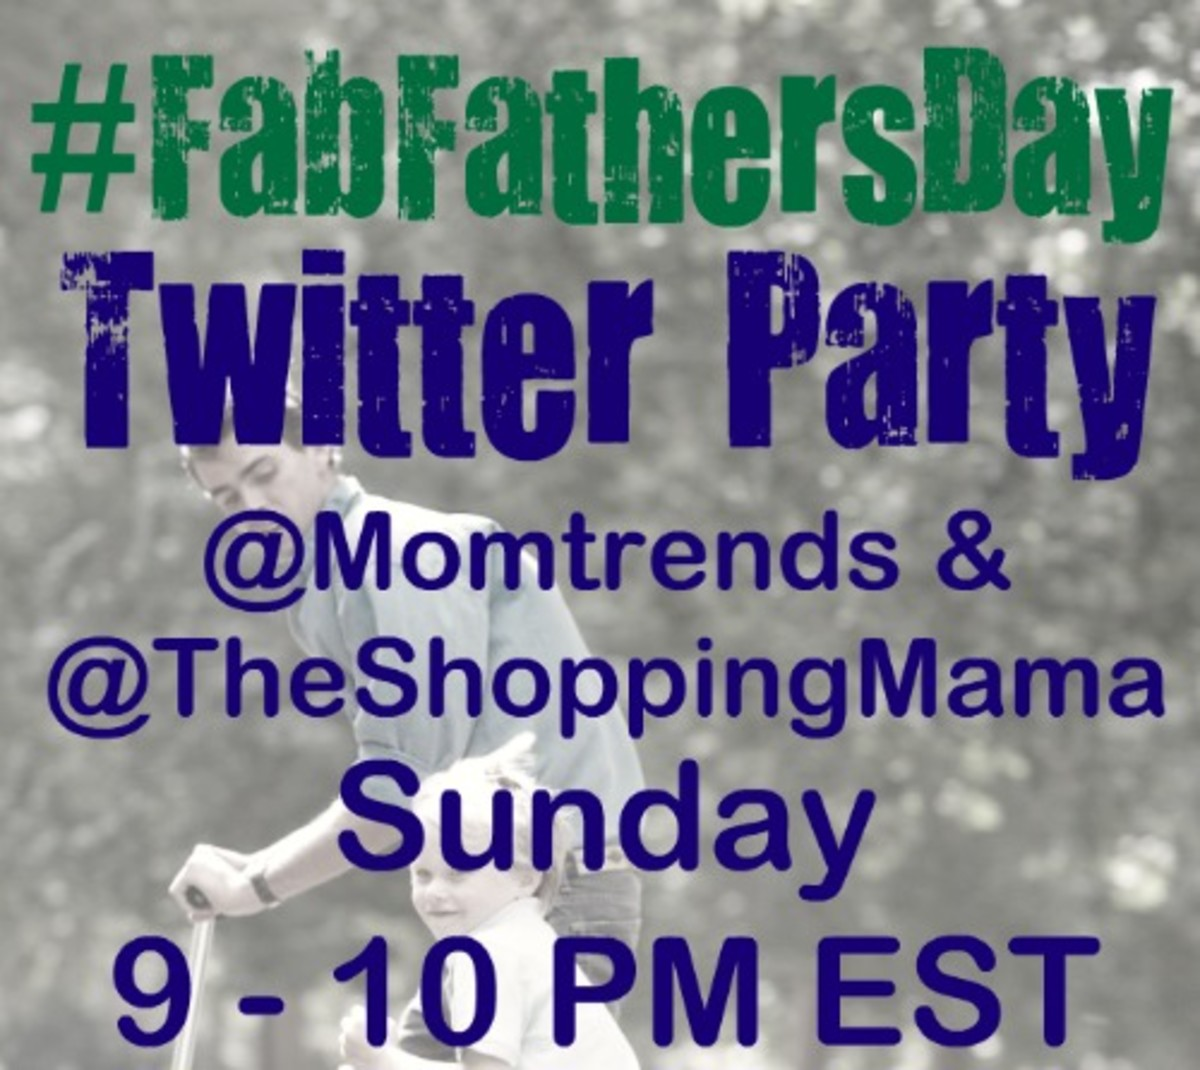 fathers-day-twitter-party